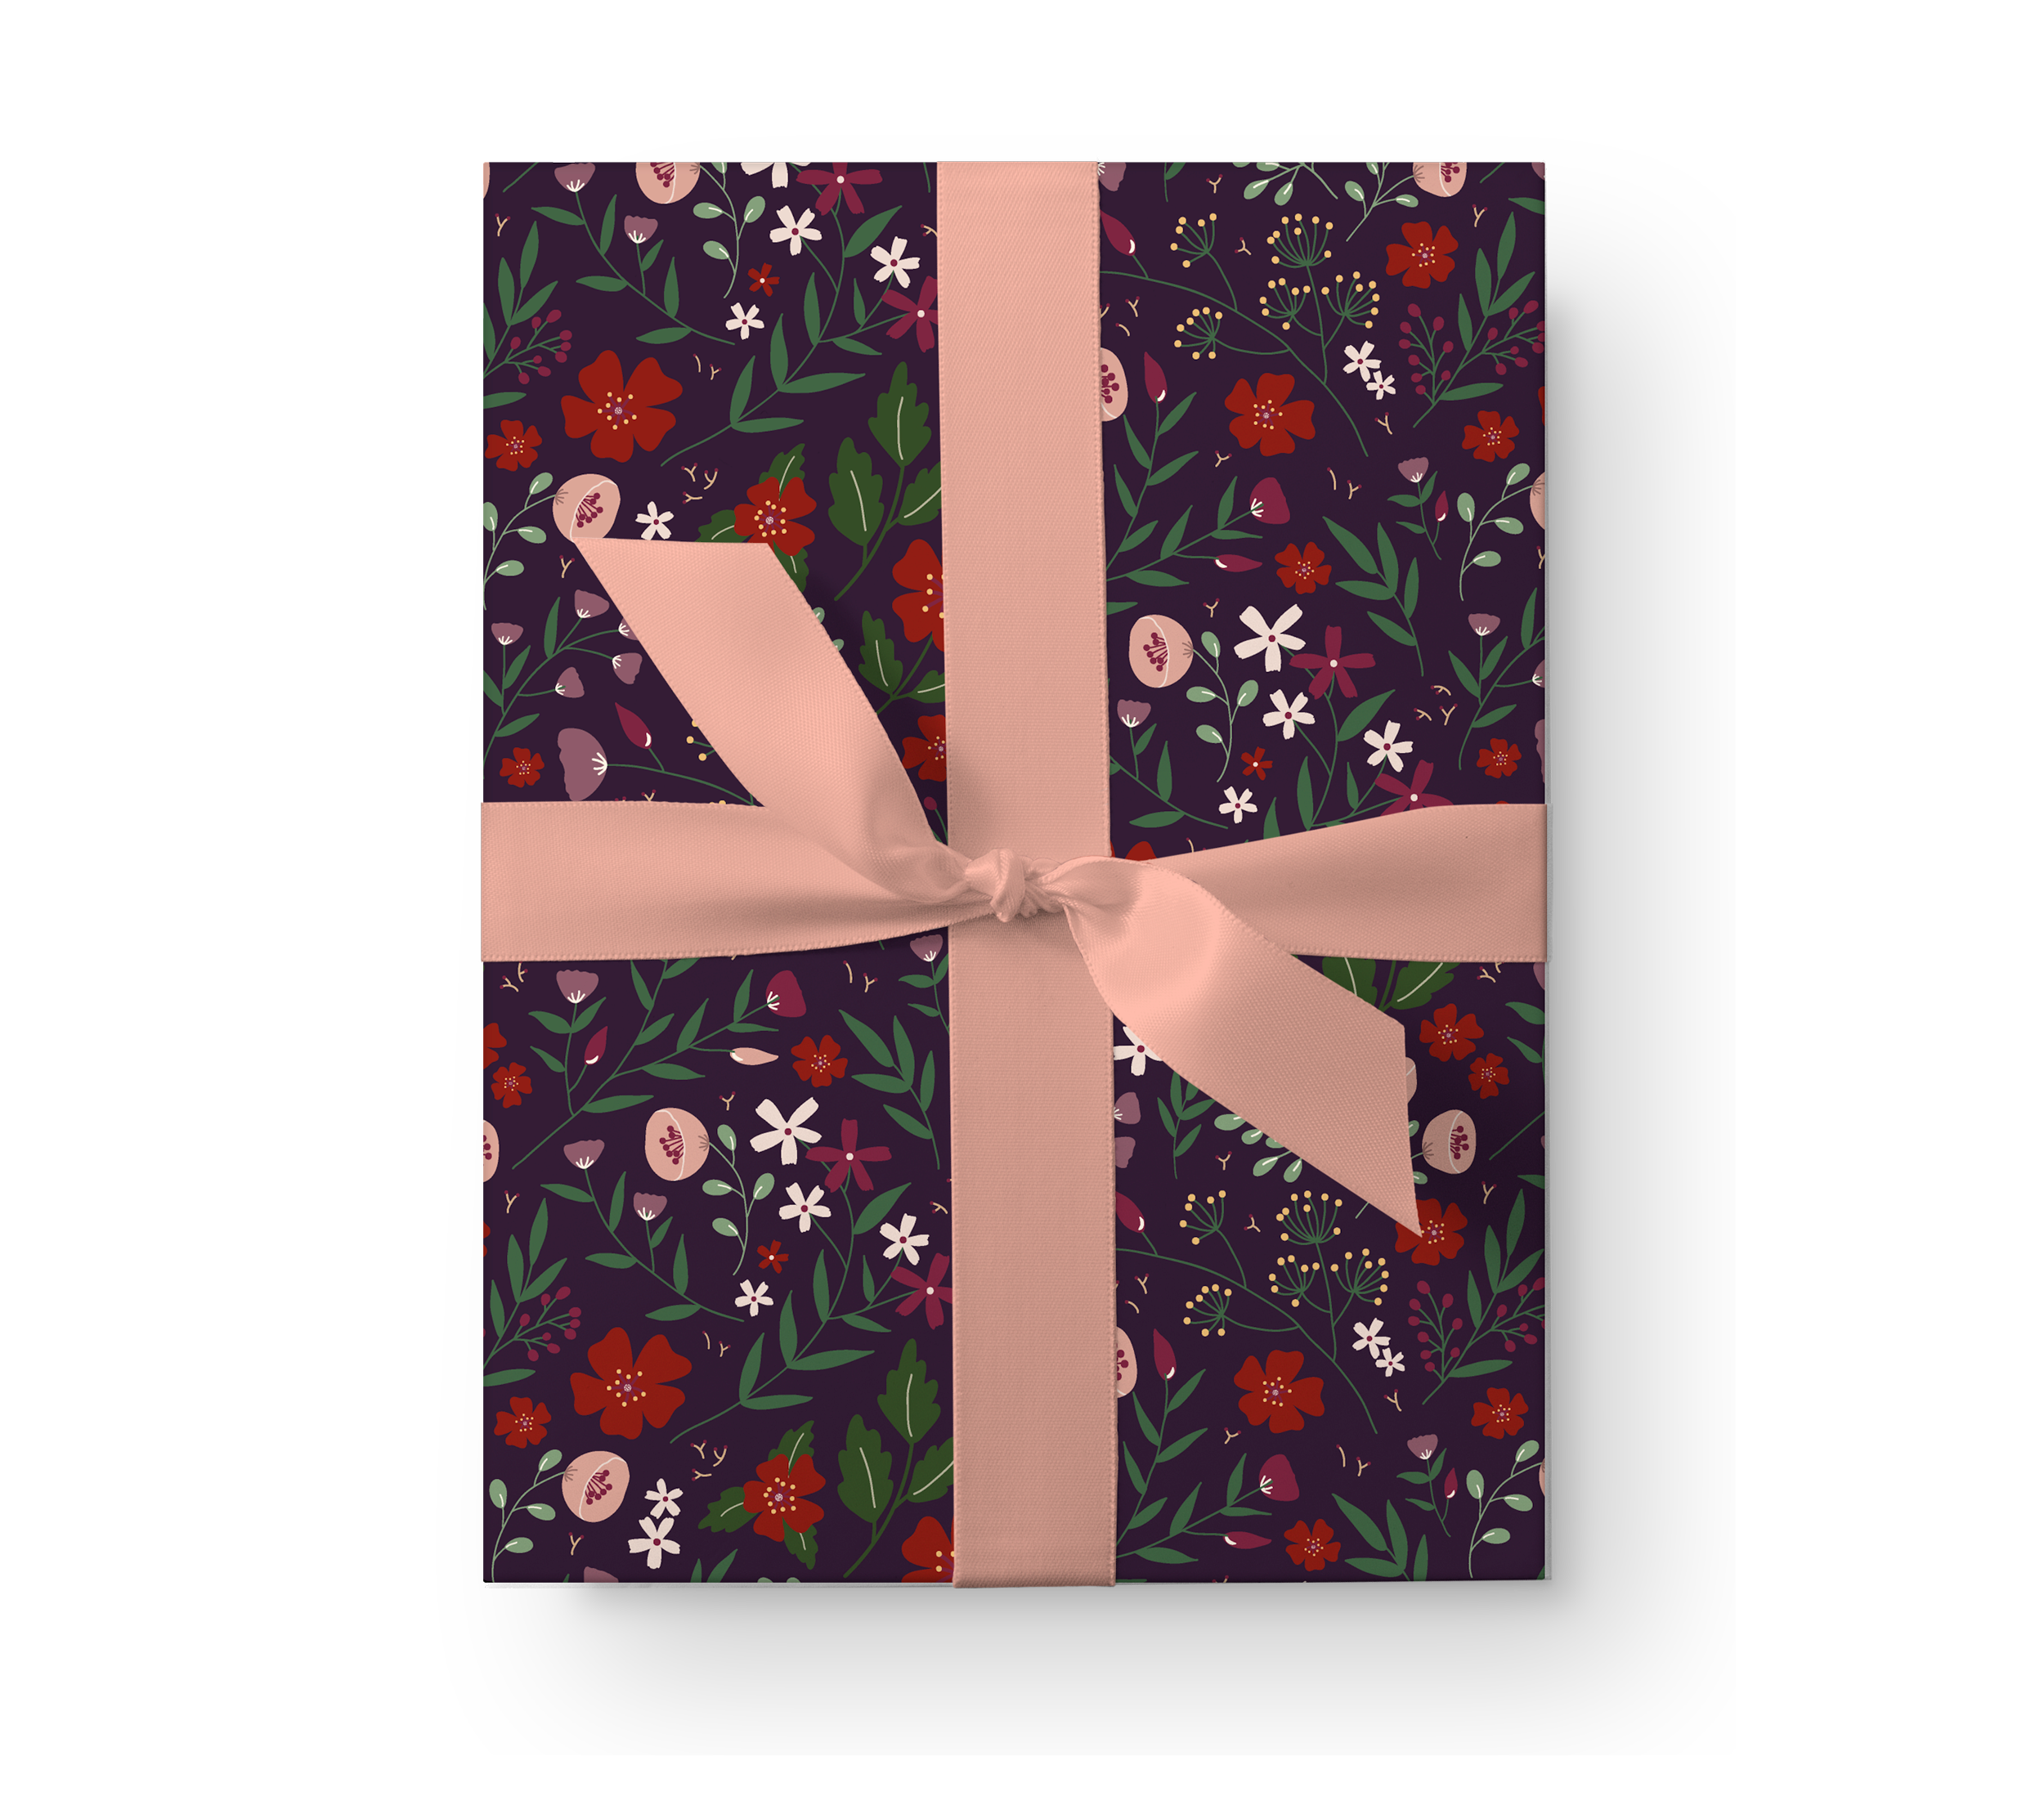 Illustrated wrapping paper gift box with a lovely dark floral pattern on a plum background.